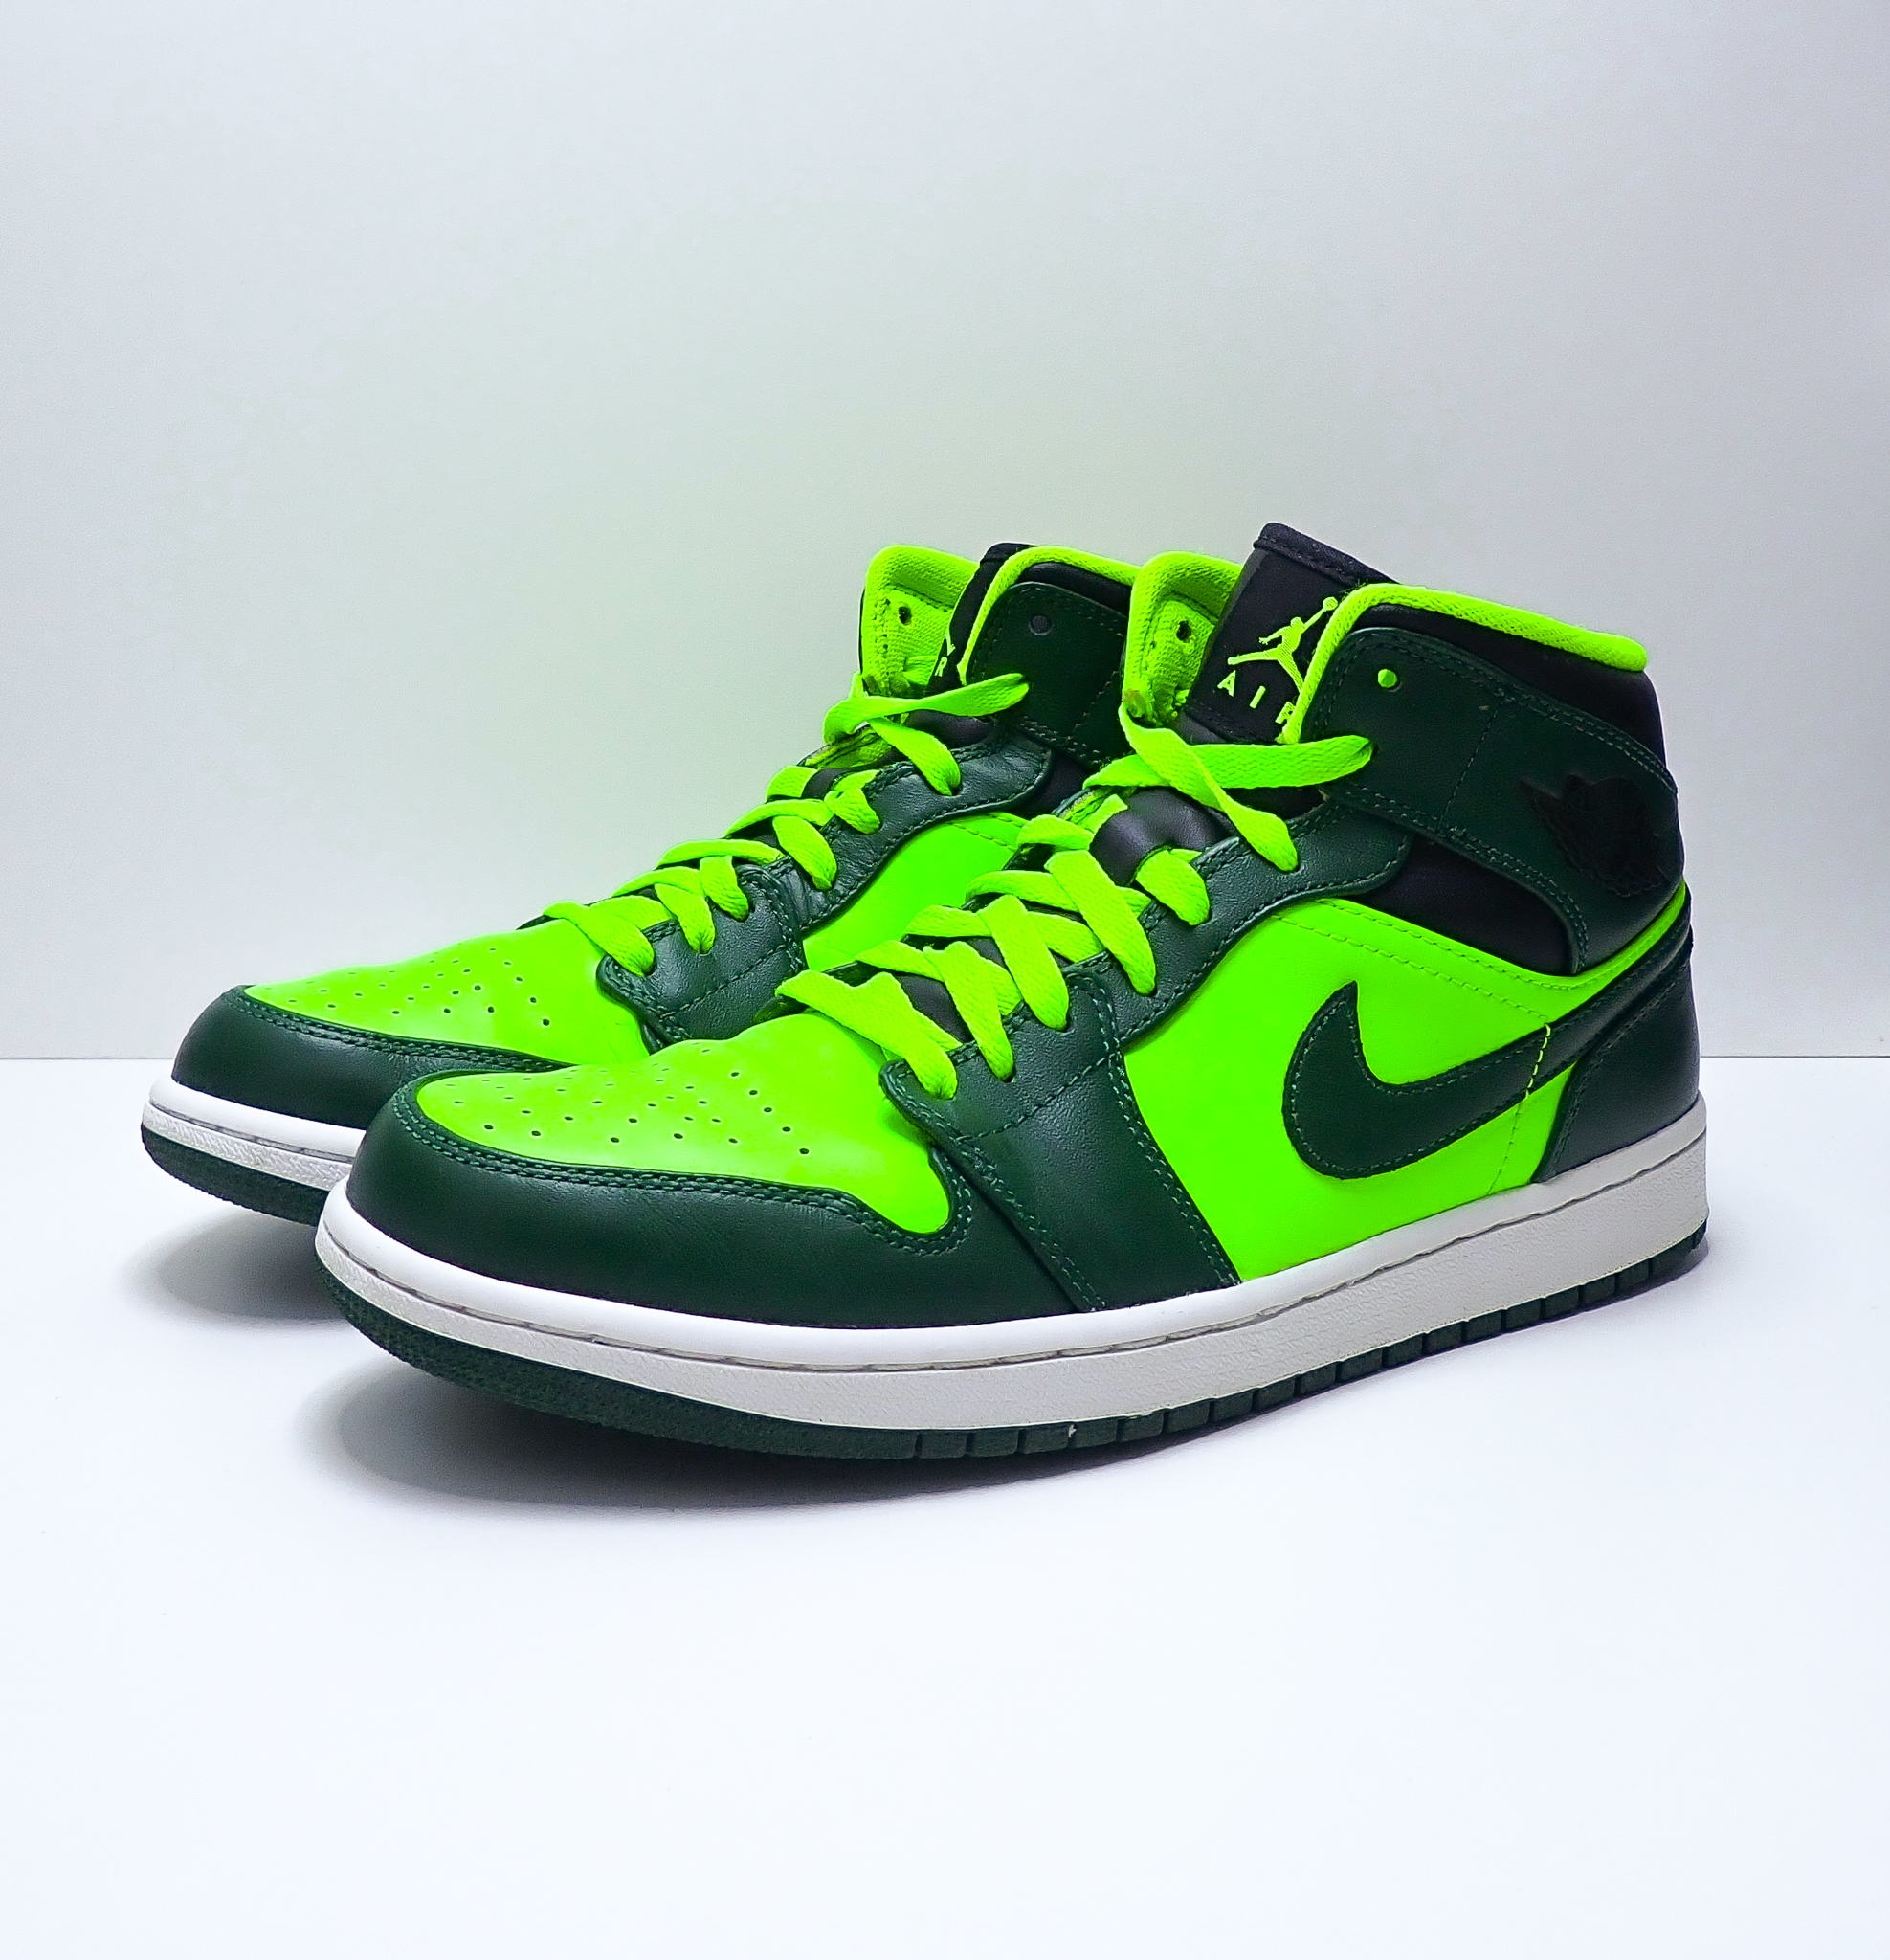 Jordan 1 Retro Mid Gorge Green